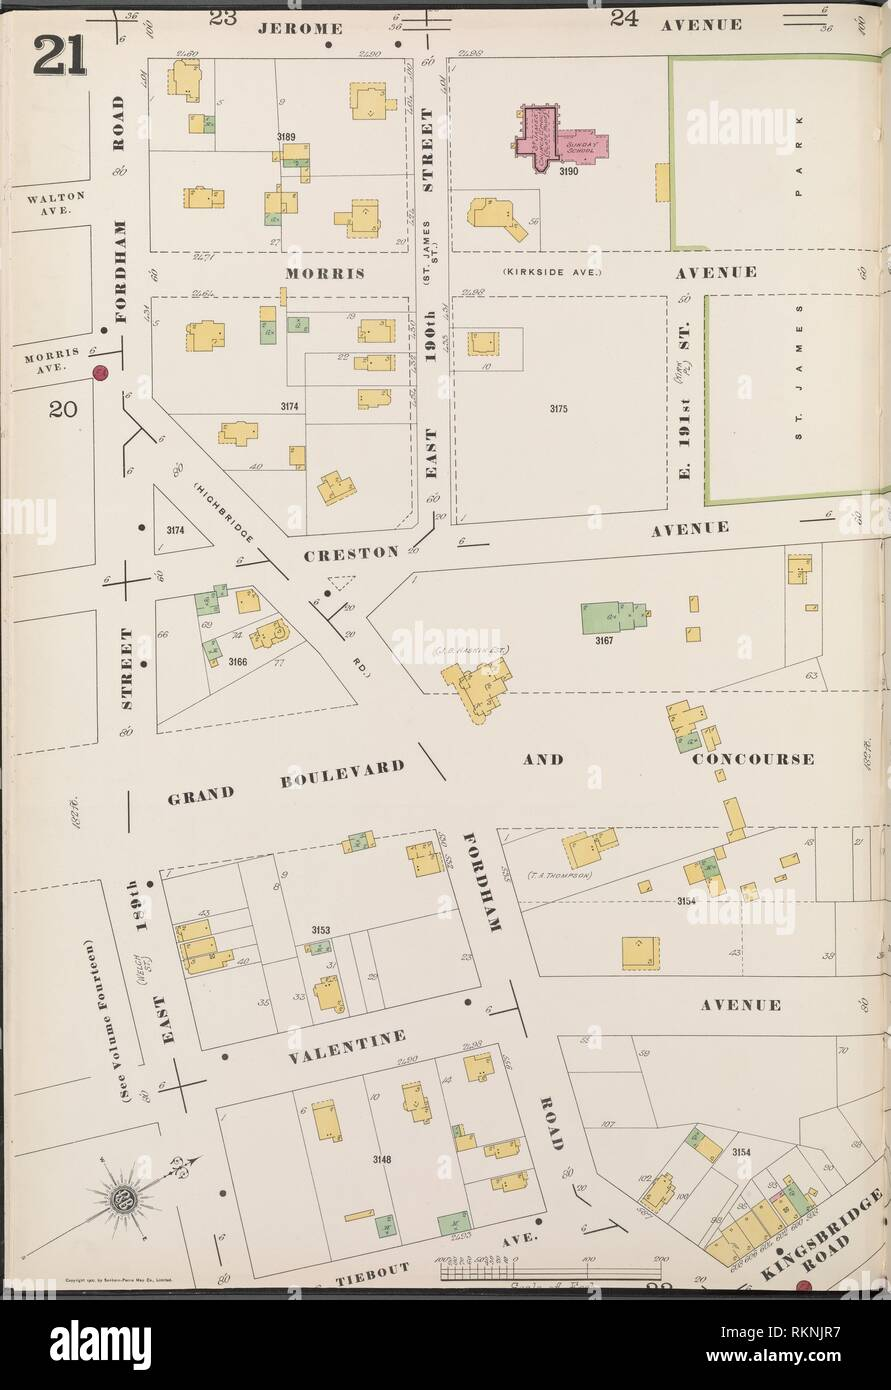 Bronx, V. 13, Plate No. 21 [Map bounded by Jerome Ave., Tiebout Ave., E. 189thSt.]. Sanborn Map Company (Publisher). Atlases of New York City New Stock Photo